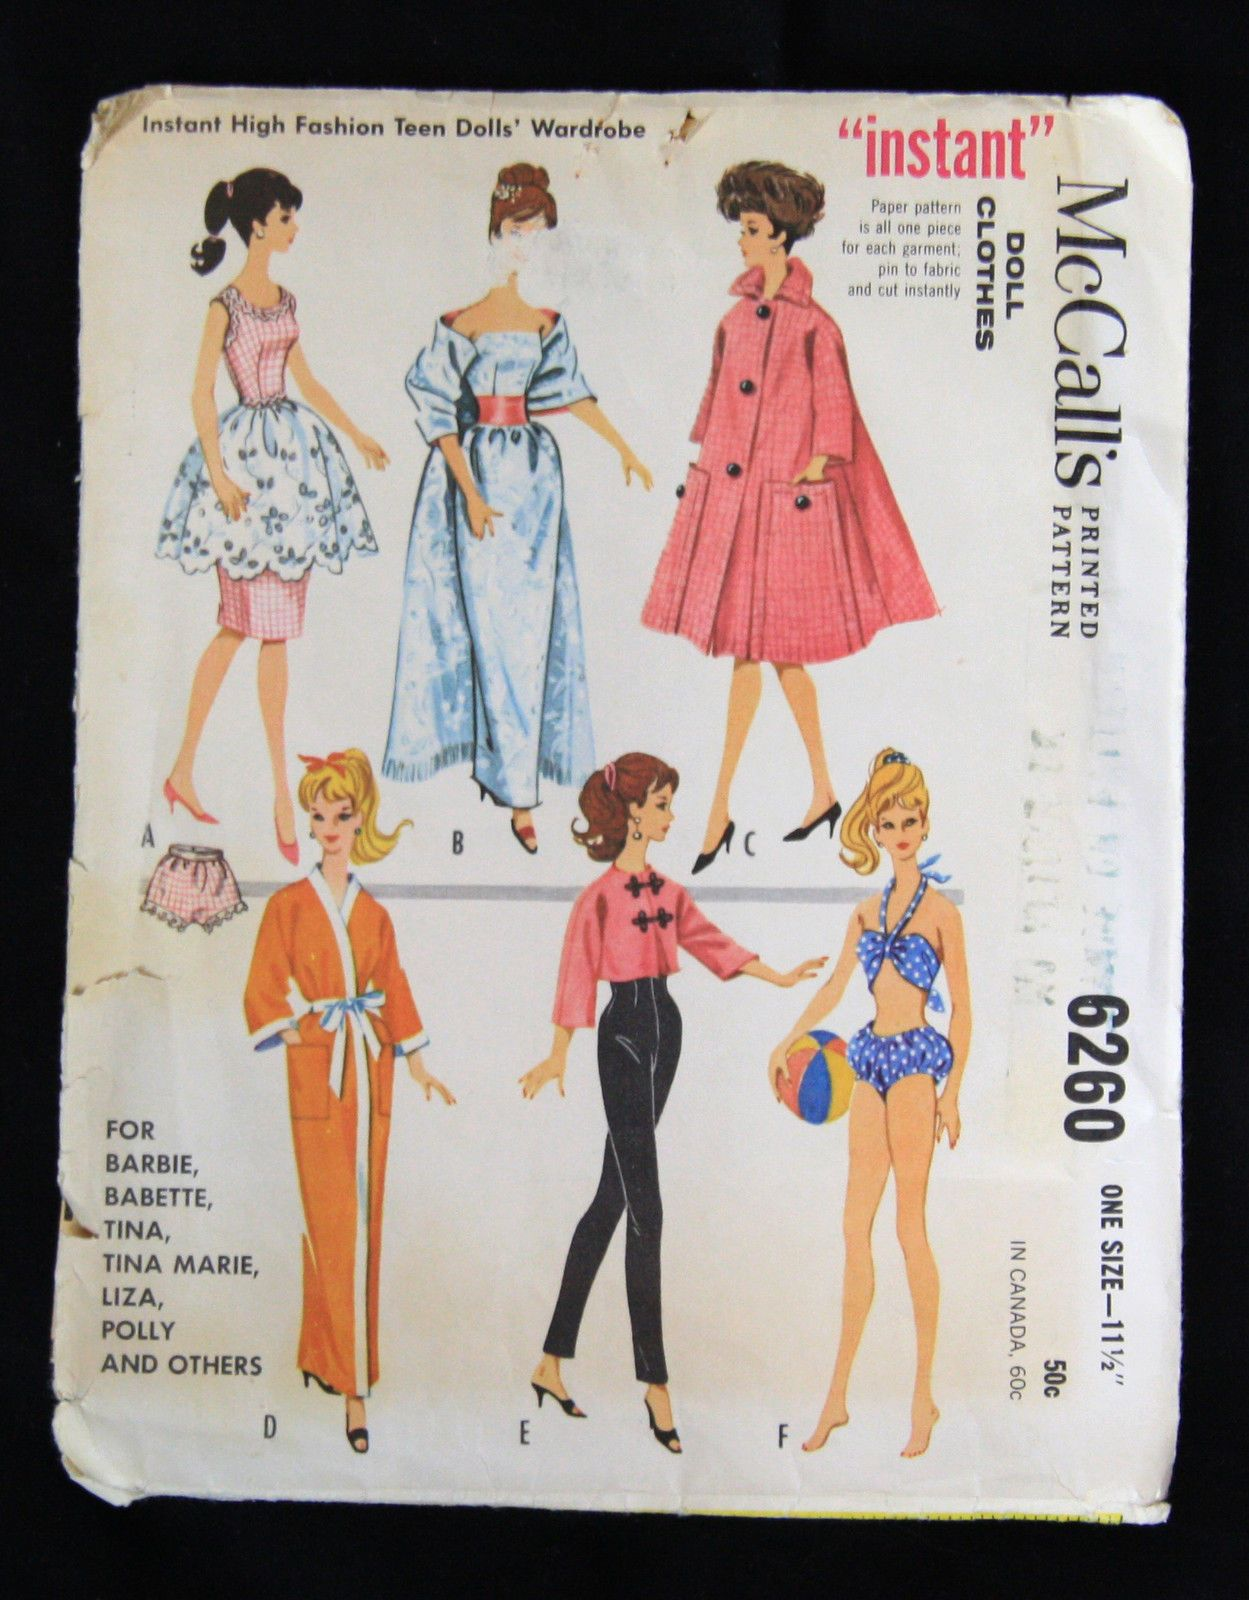 Vintage Sewing Pattern Barbie Teen Doll Wardrobe Clothes 1962